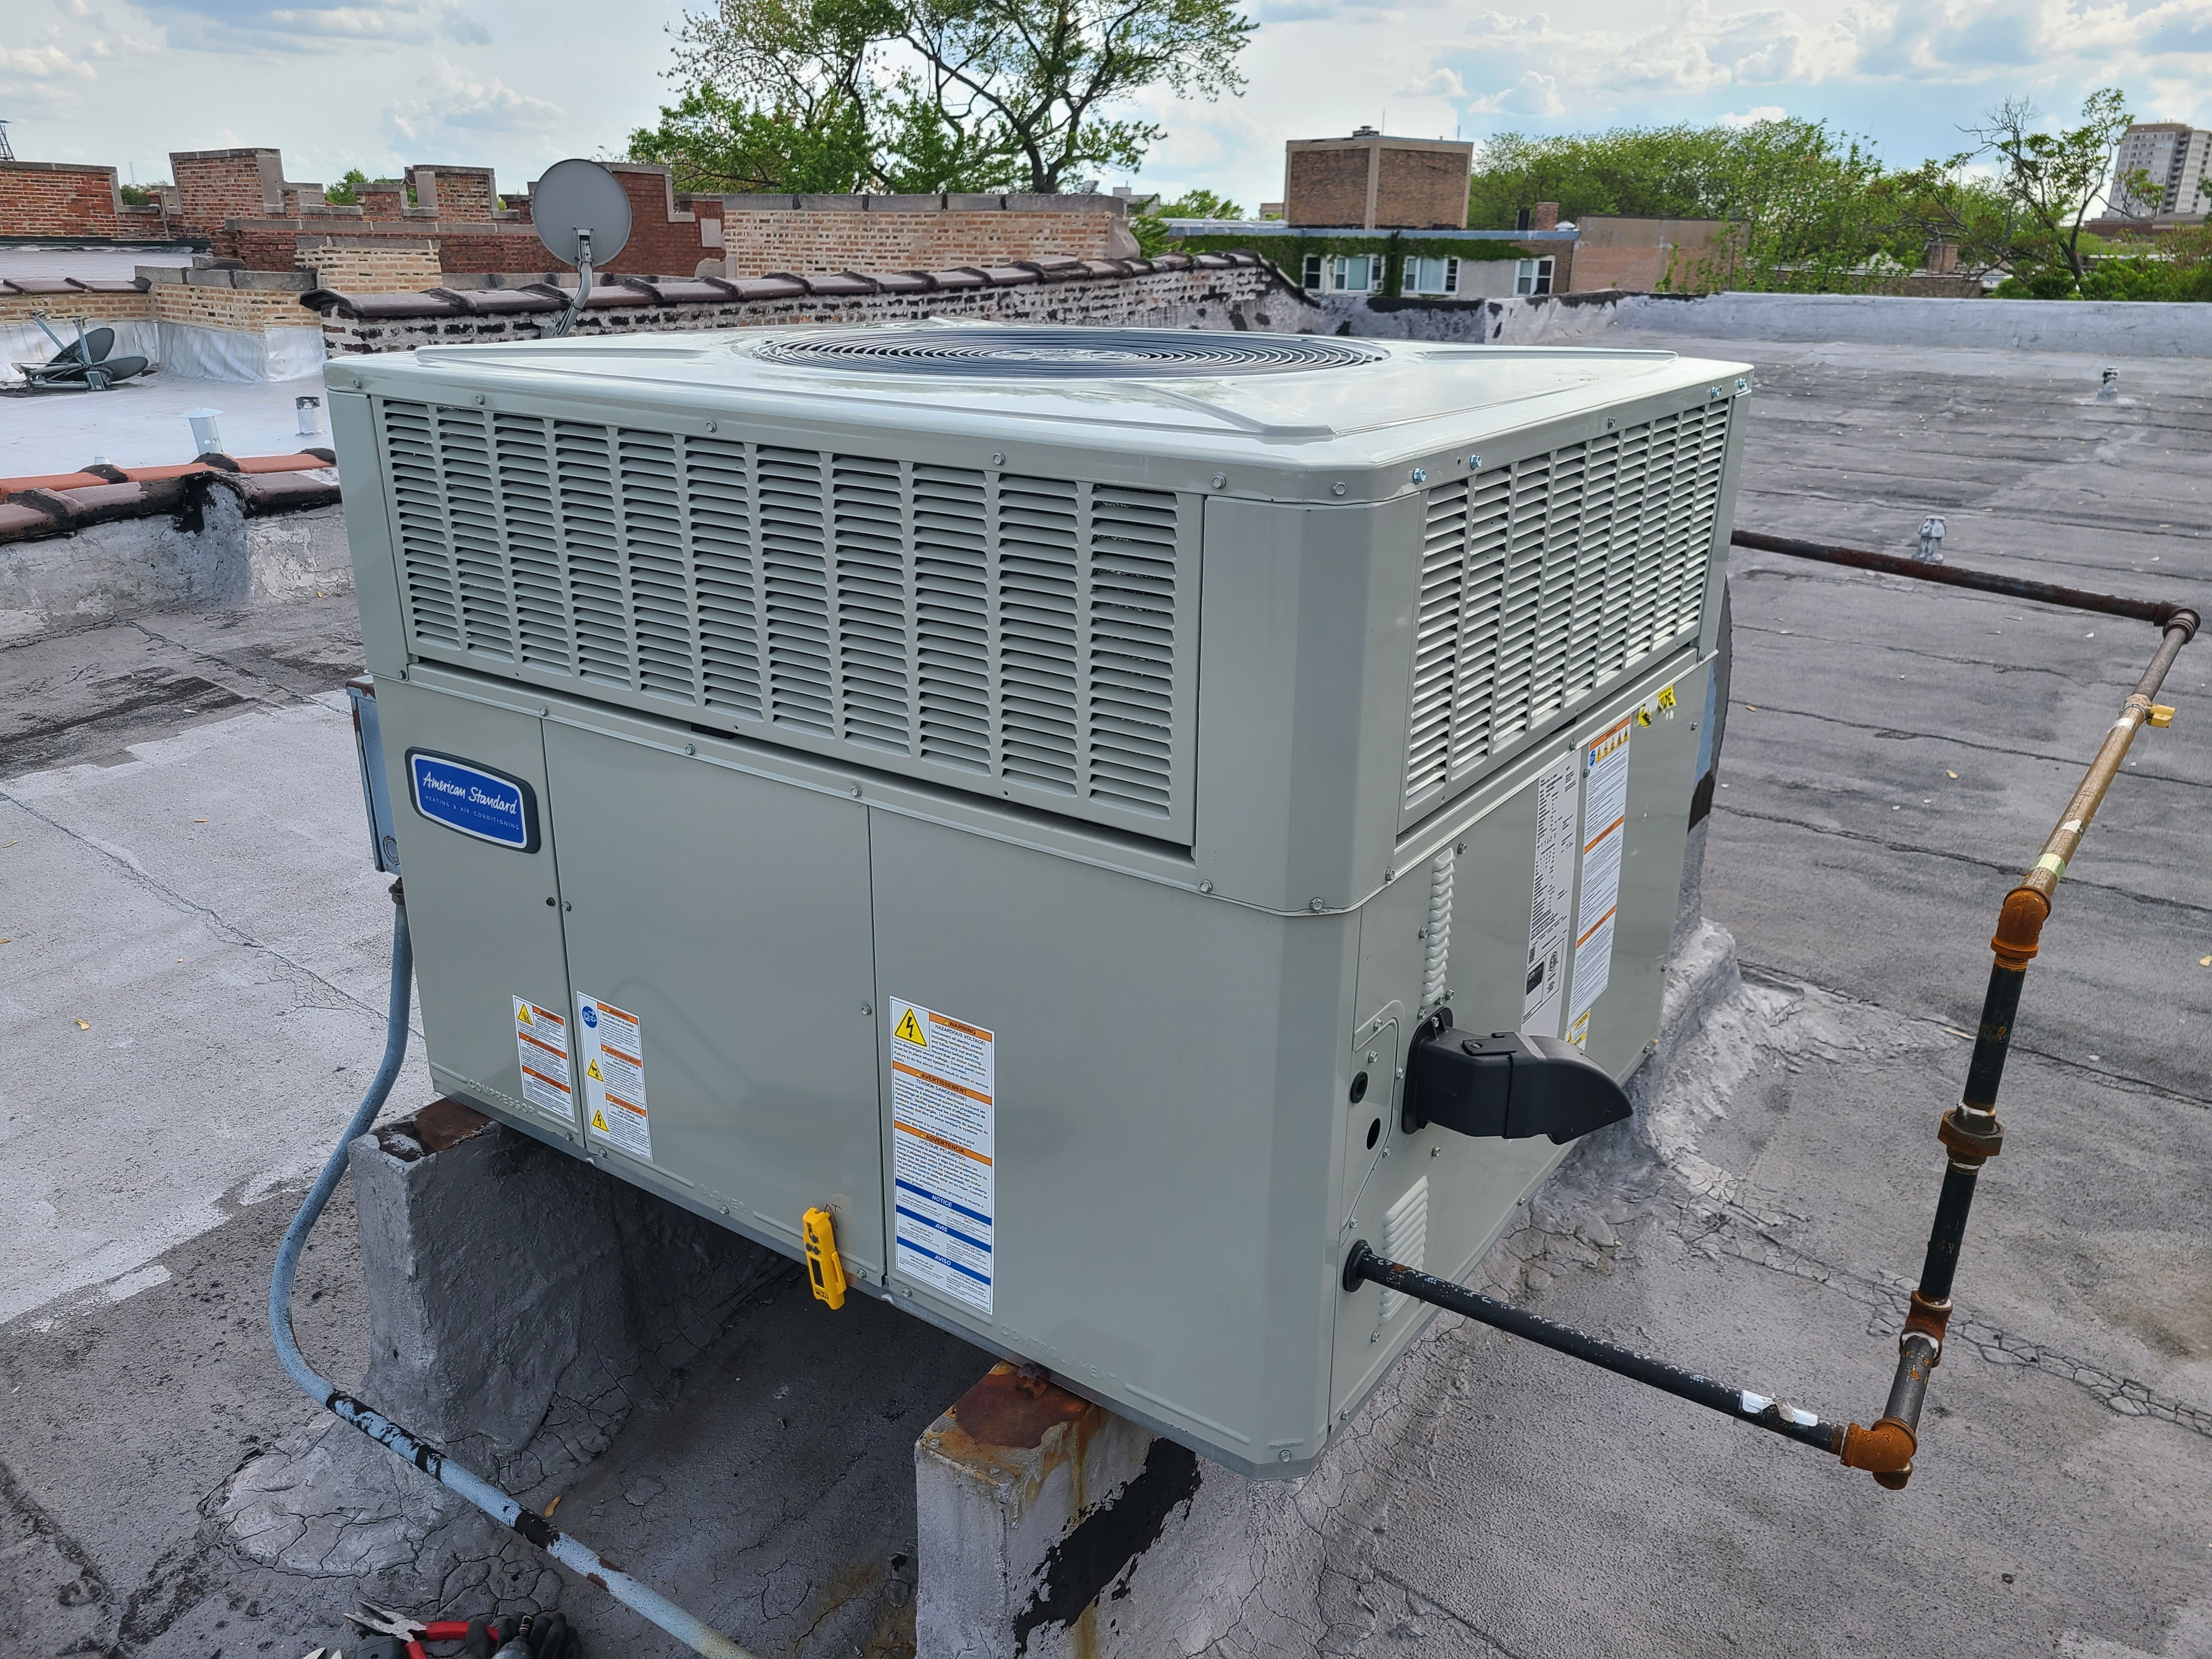 New American standard rooftop ac system started up and tuned for optimum performance.